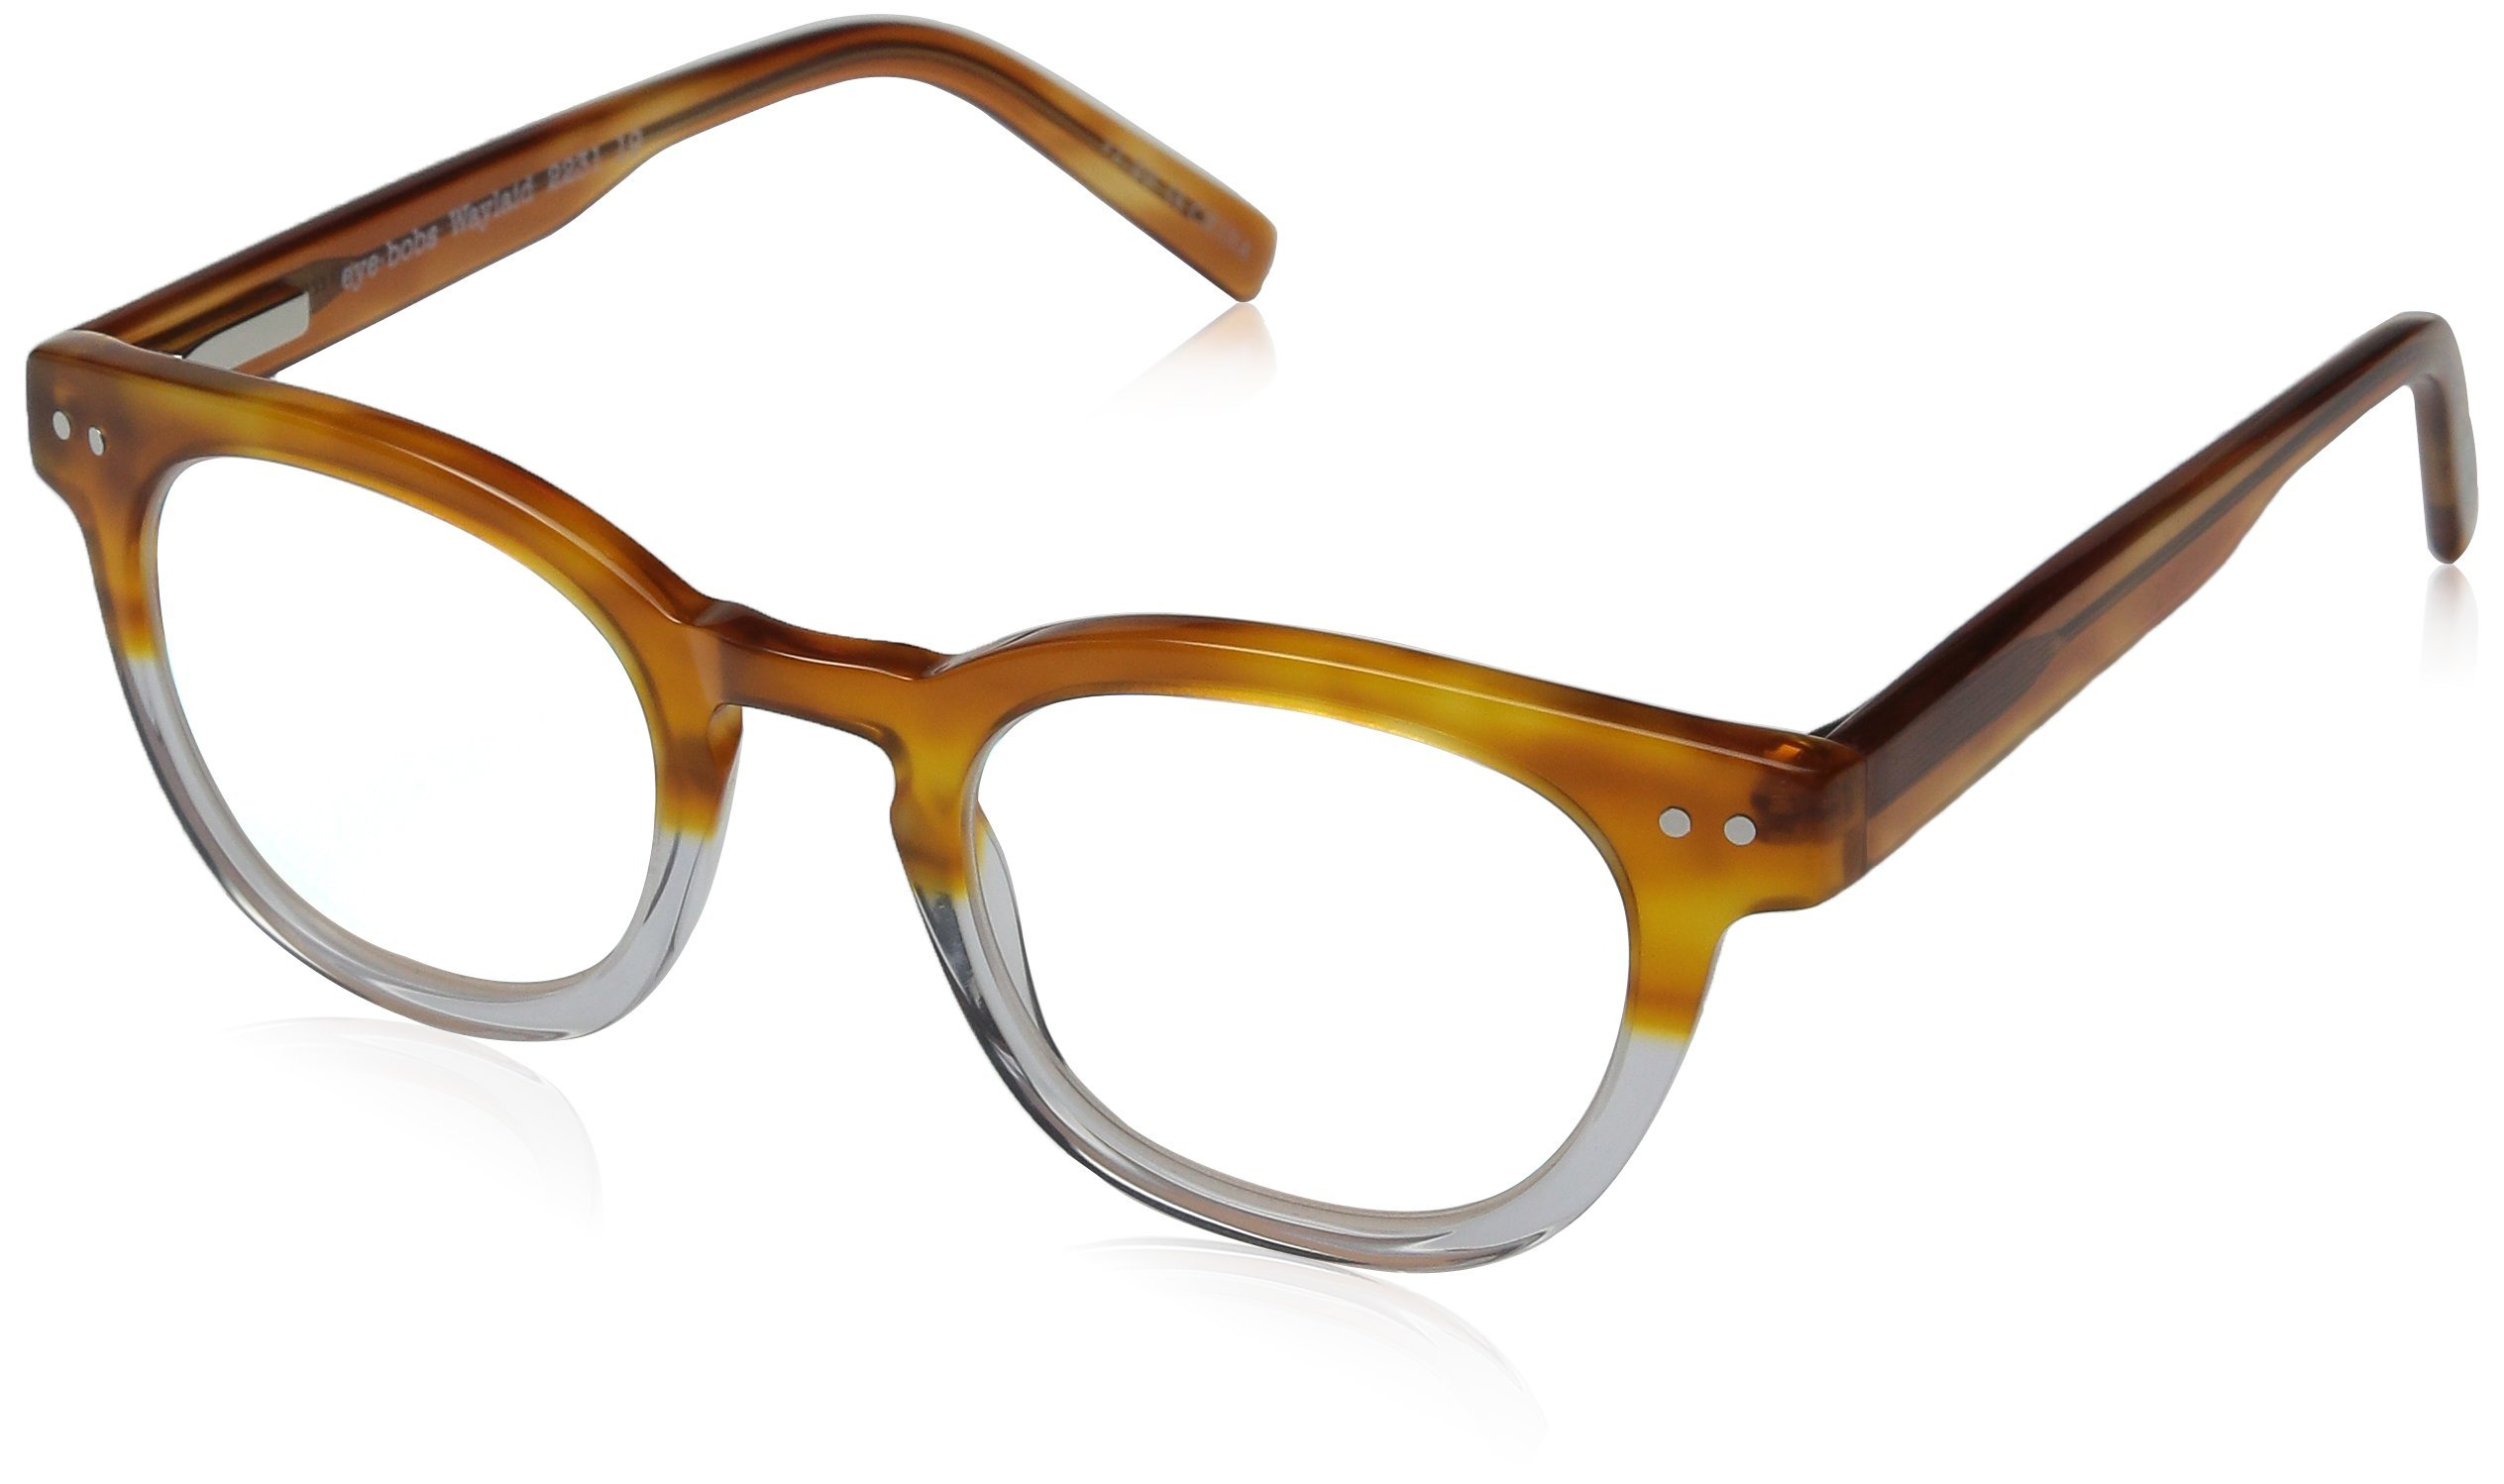 Eyebobs Waylaid 2231-19 Classic Reading Glasses,Amber & Crystal,46 mm by EyeBobs